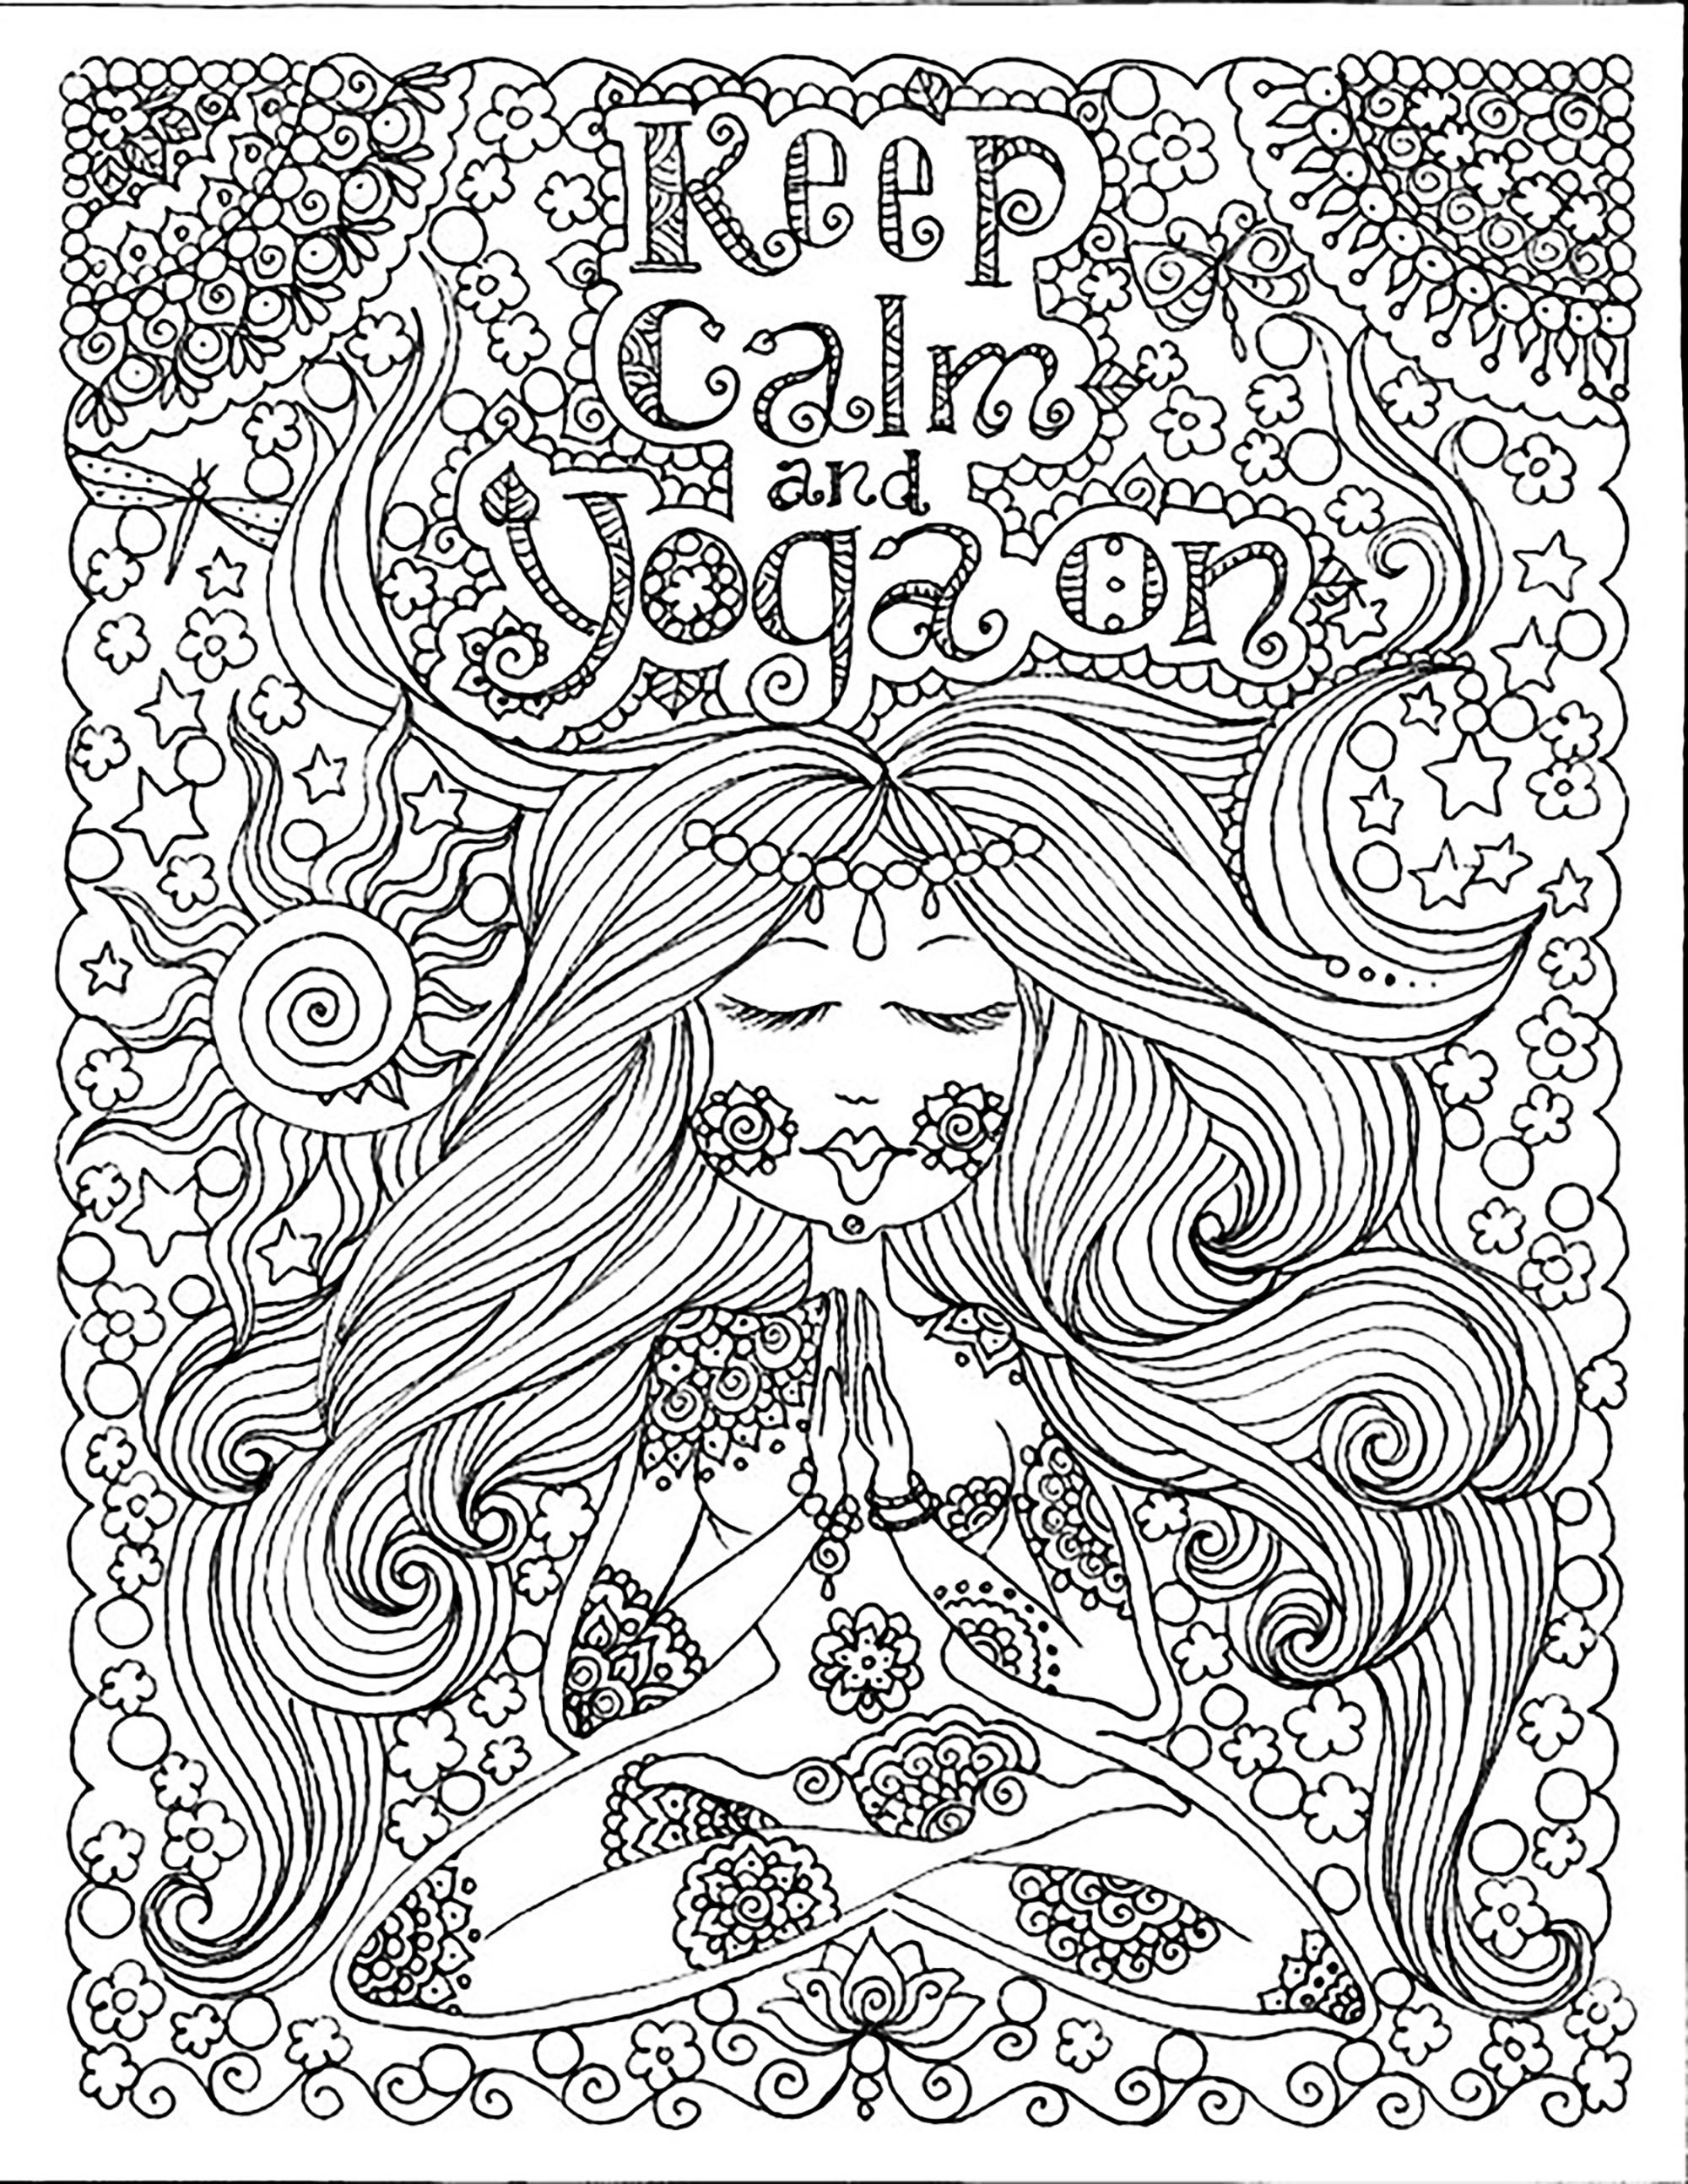 Keep calm and do YogaFrom the gallery : Zen & Anti StressArtist : Deborah Muller